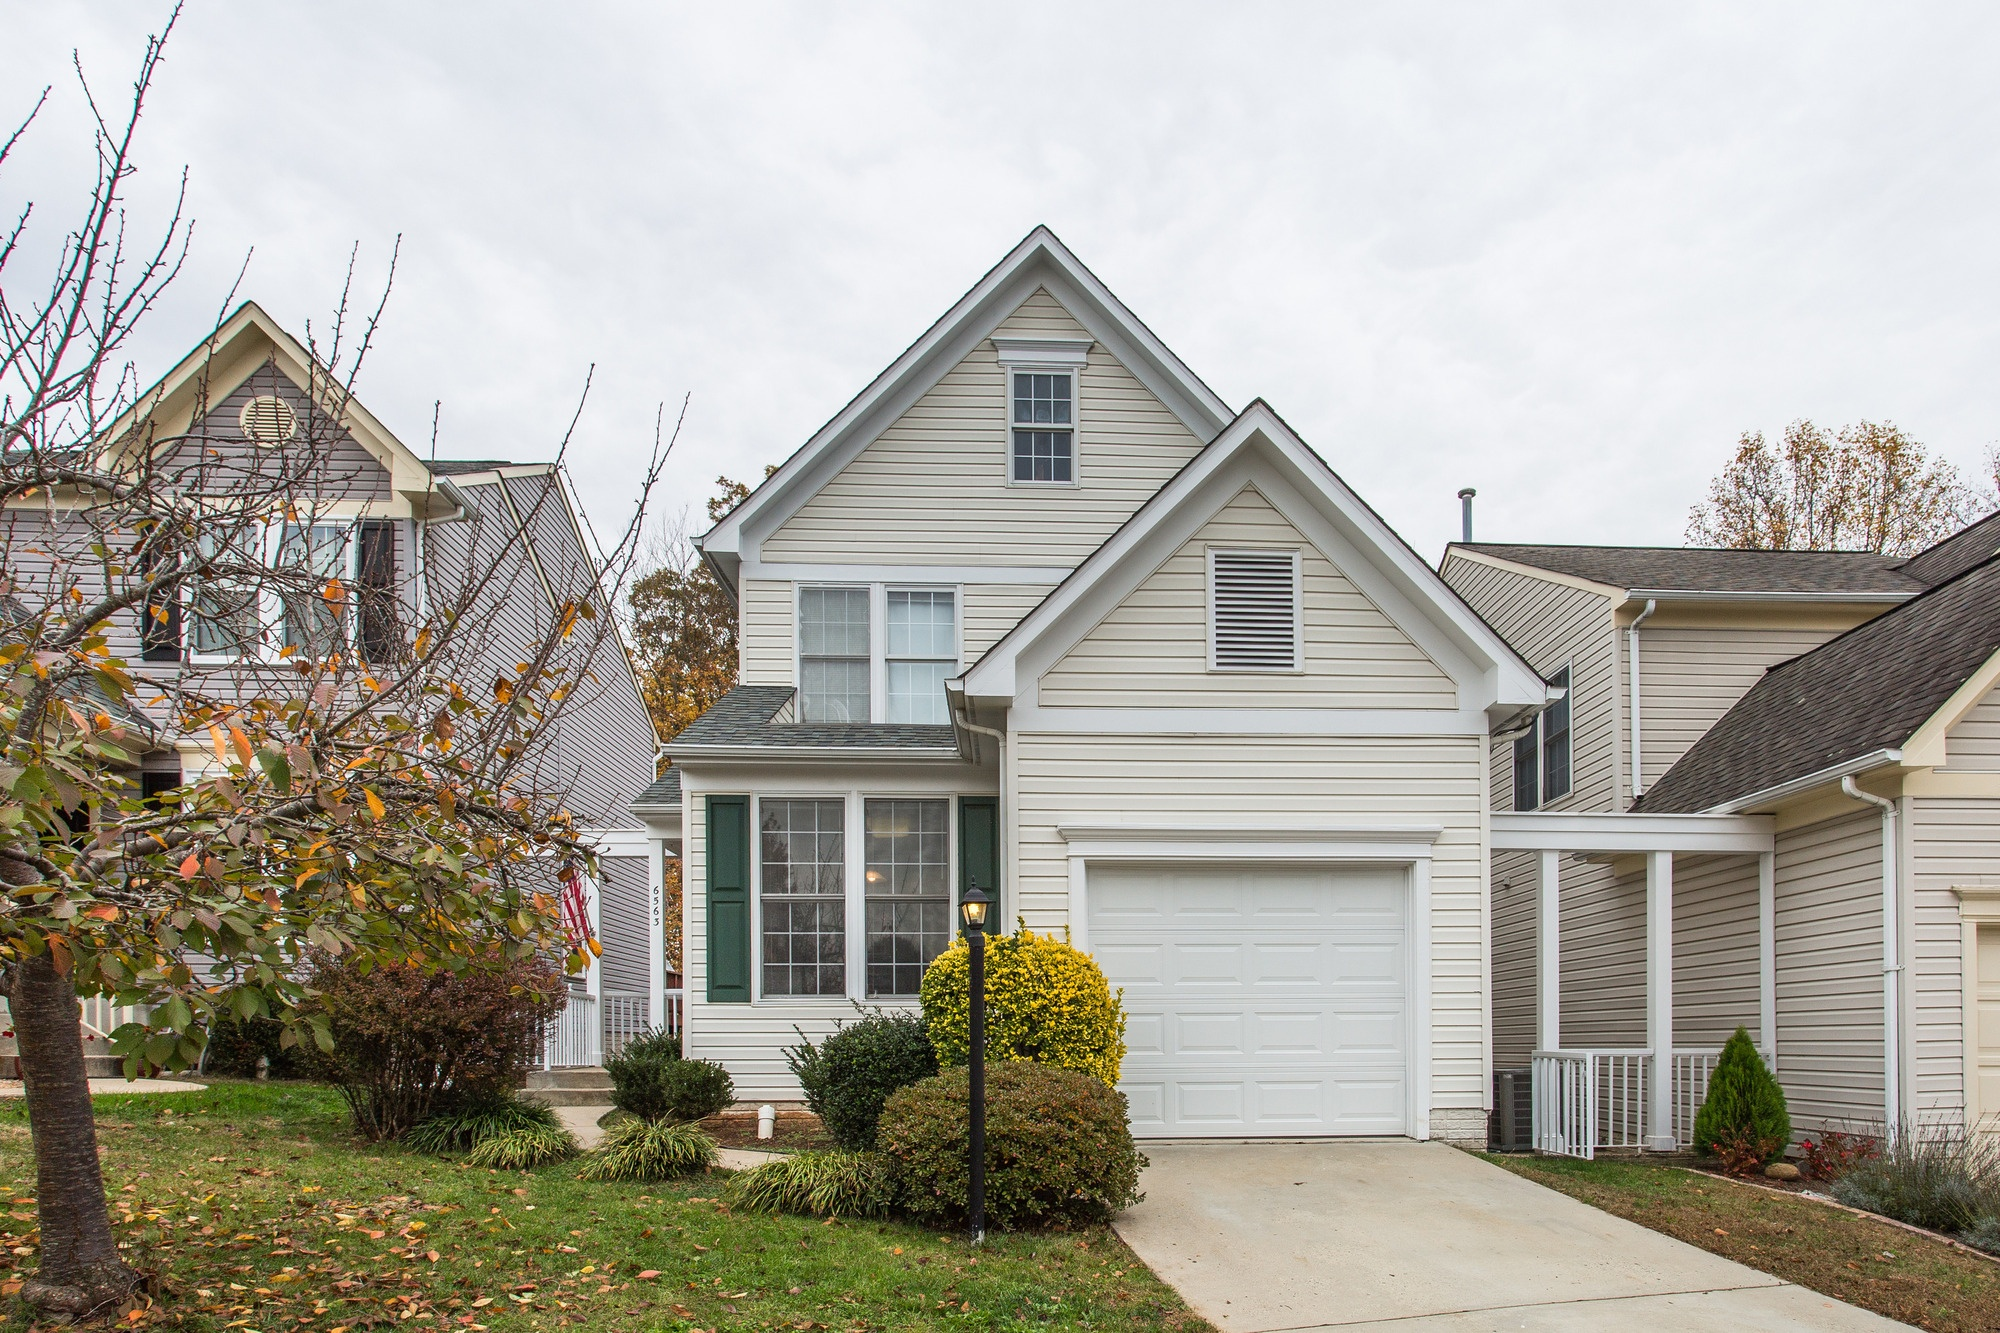 SOLD: Elegant Single Family Colonial Home